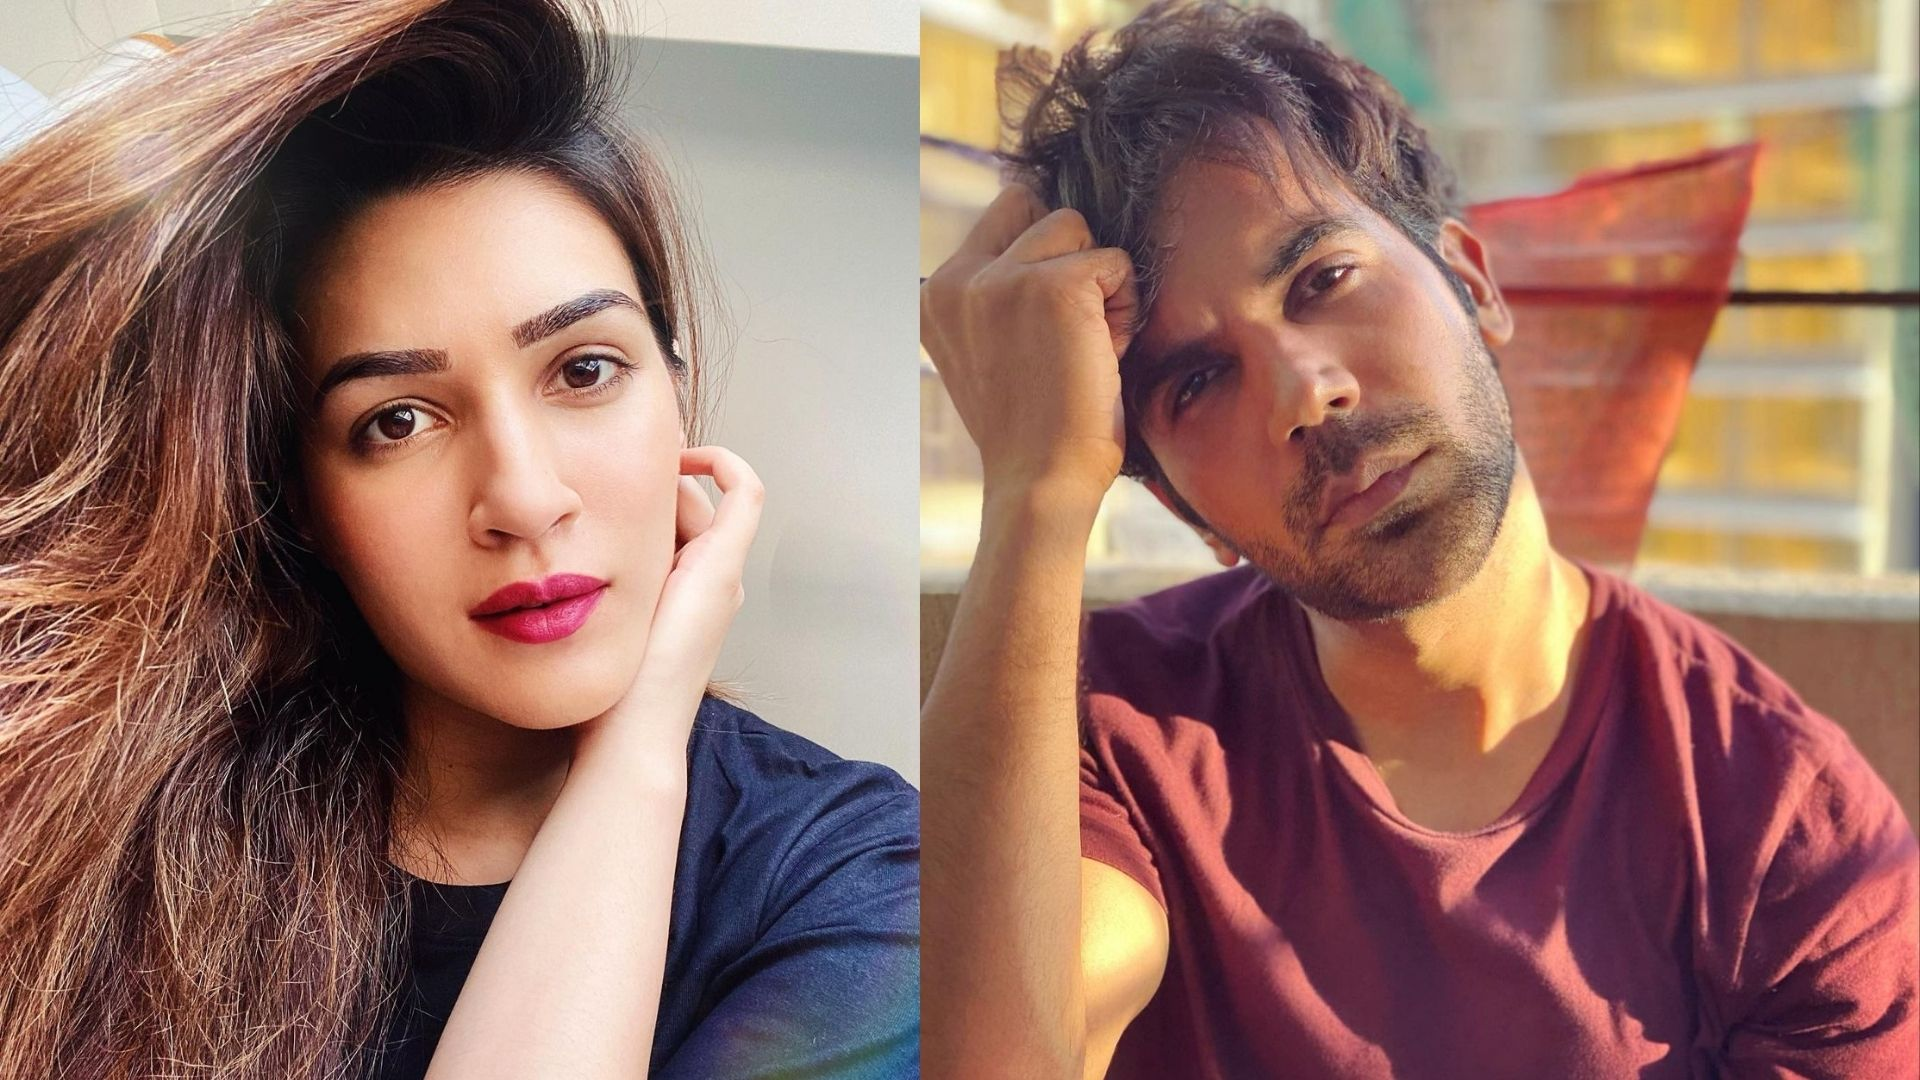 Kriti Sanon And Rajkummar Rao To Make A New Movie Announcement Soon?; Actor Duo Shares An Intriguing Poster